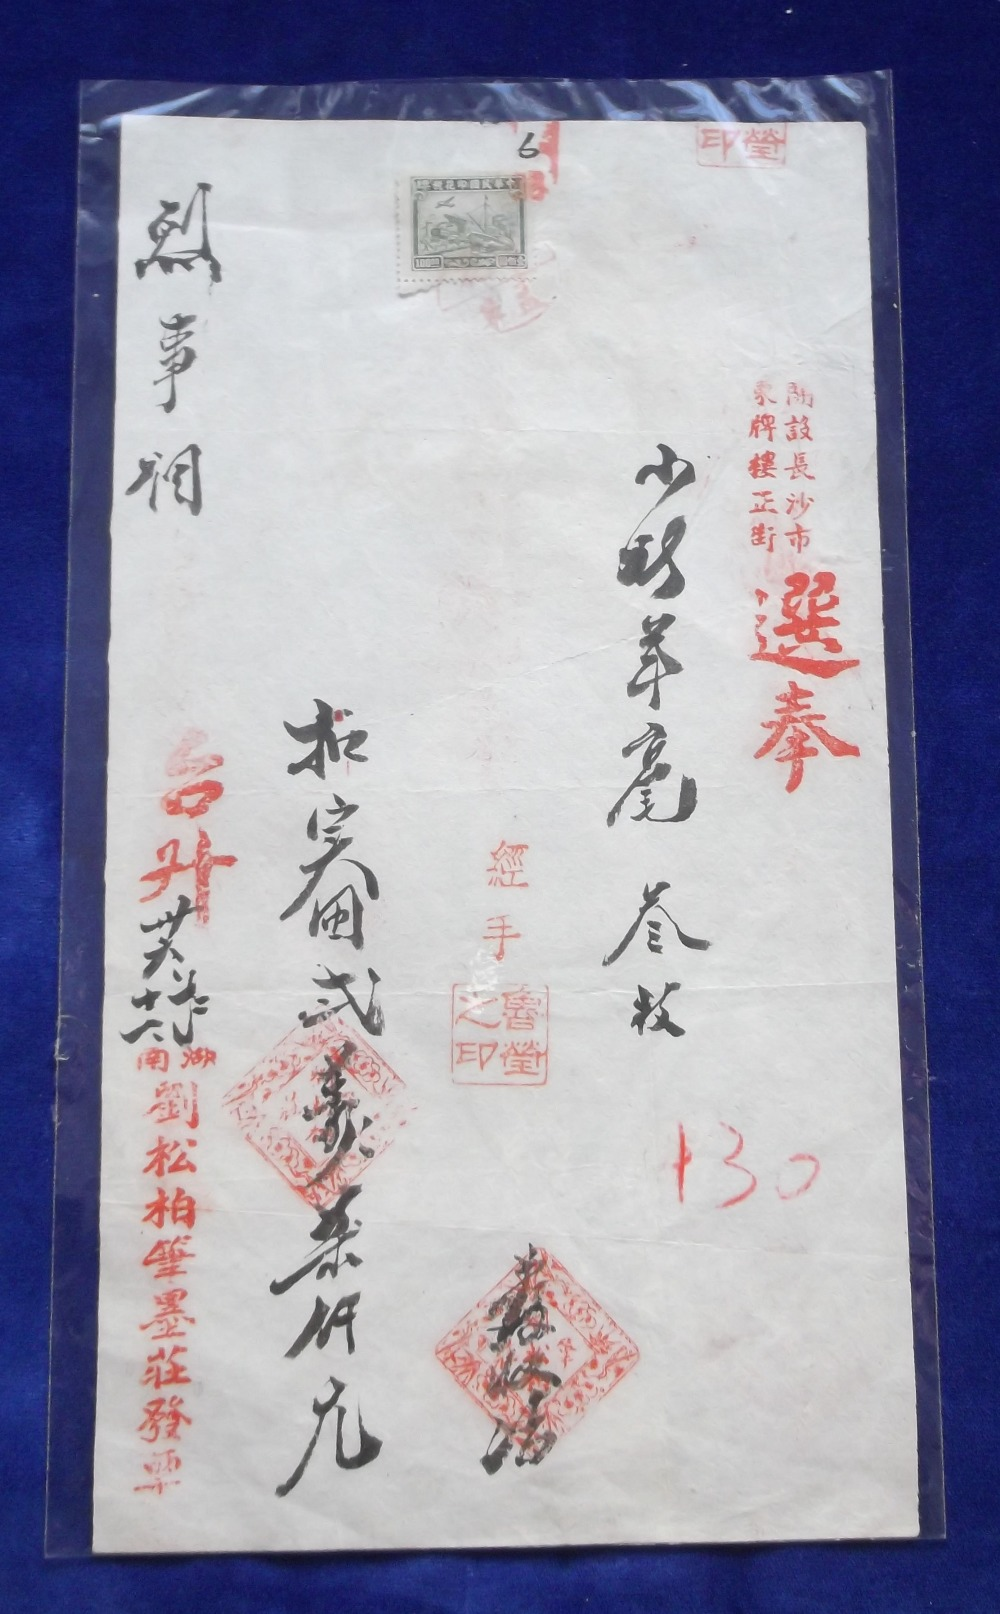 Lot 27 - Postal History / Ephemera, China, paper document probably legal content, with one postage stamp